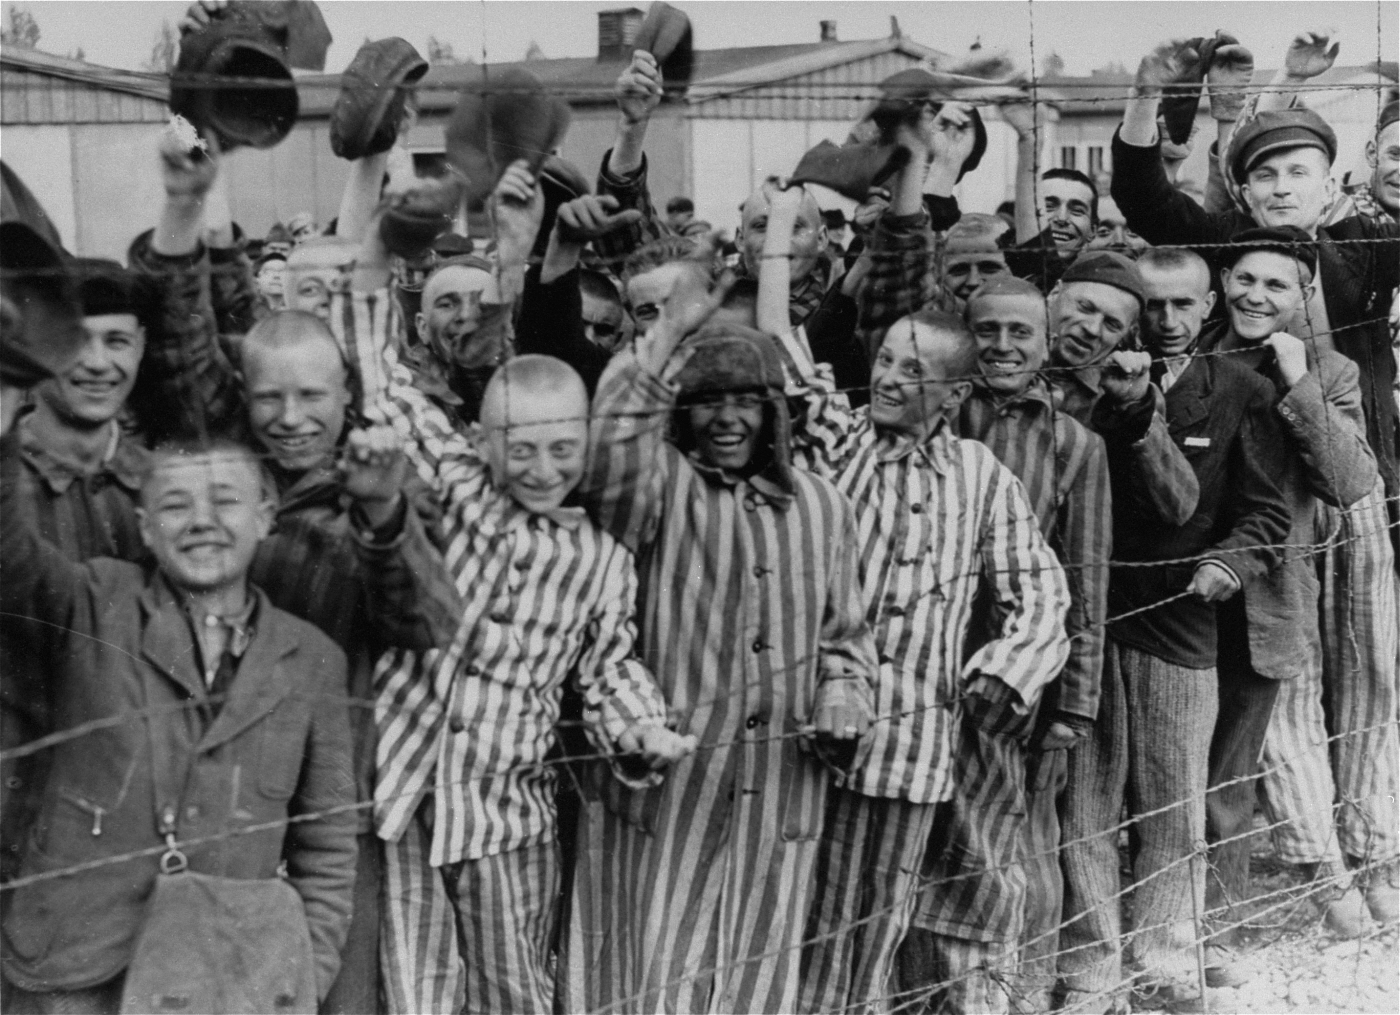 https://upload.wikimedia.org/wikipedia/commons/e/e0/Prisoners_liberation_dachau.jpg